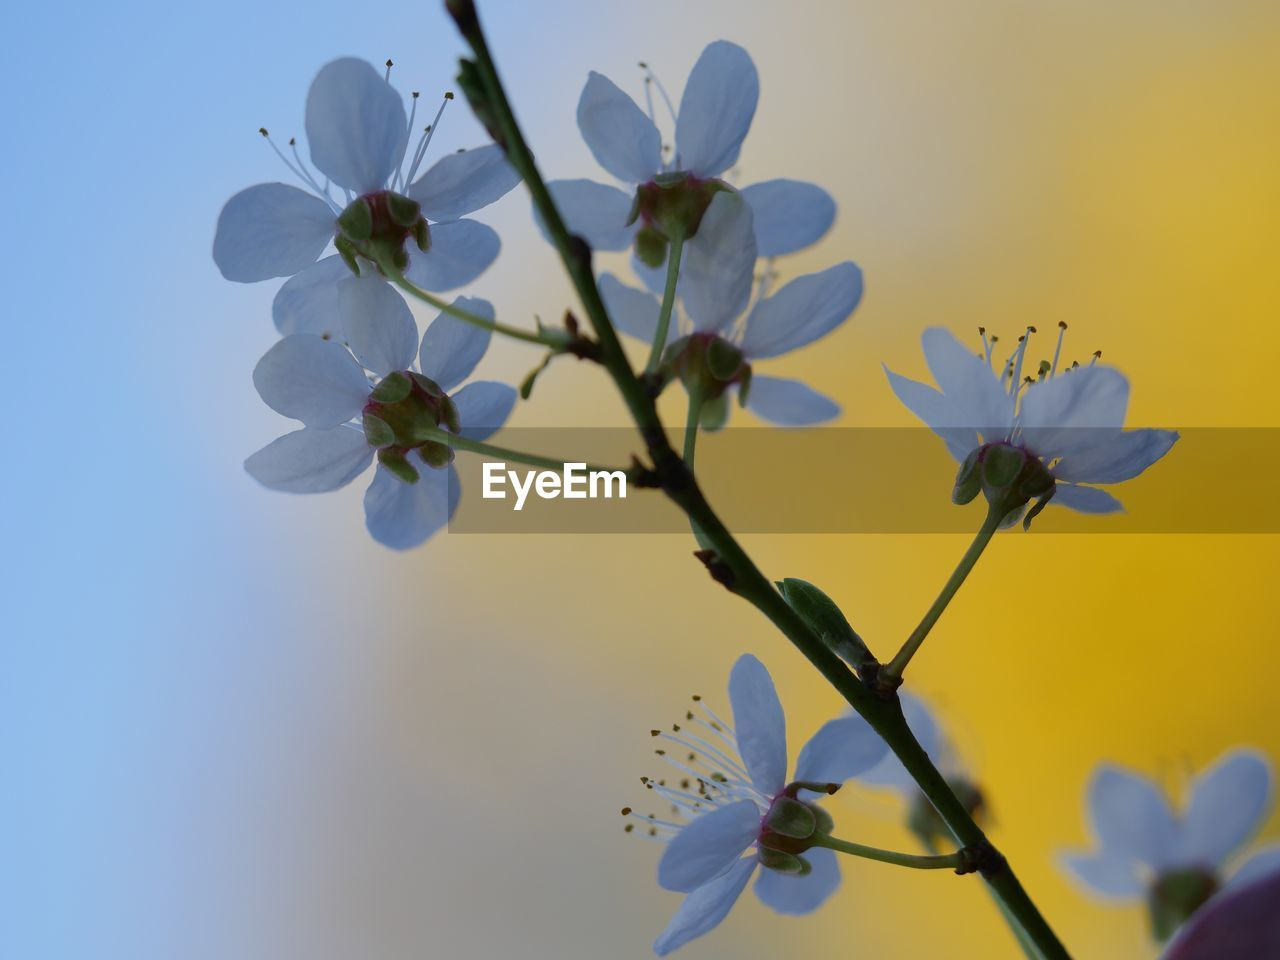 flowering plant, flower, plant, fragility, vulnerability, growth, beauty in nature, freshness, petal, close-up, inflorescence, sky, flower head, nature, springtime, blossom, low angle view, tree, no people, twig, pollen, plum blossom, cherry blossom, cherry tree